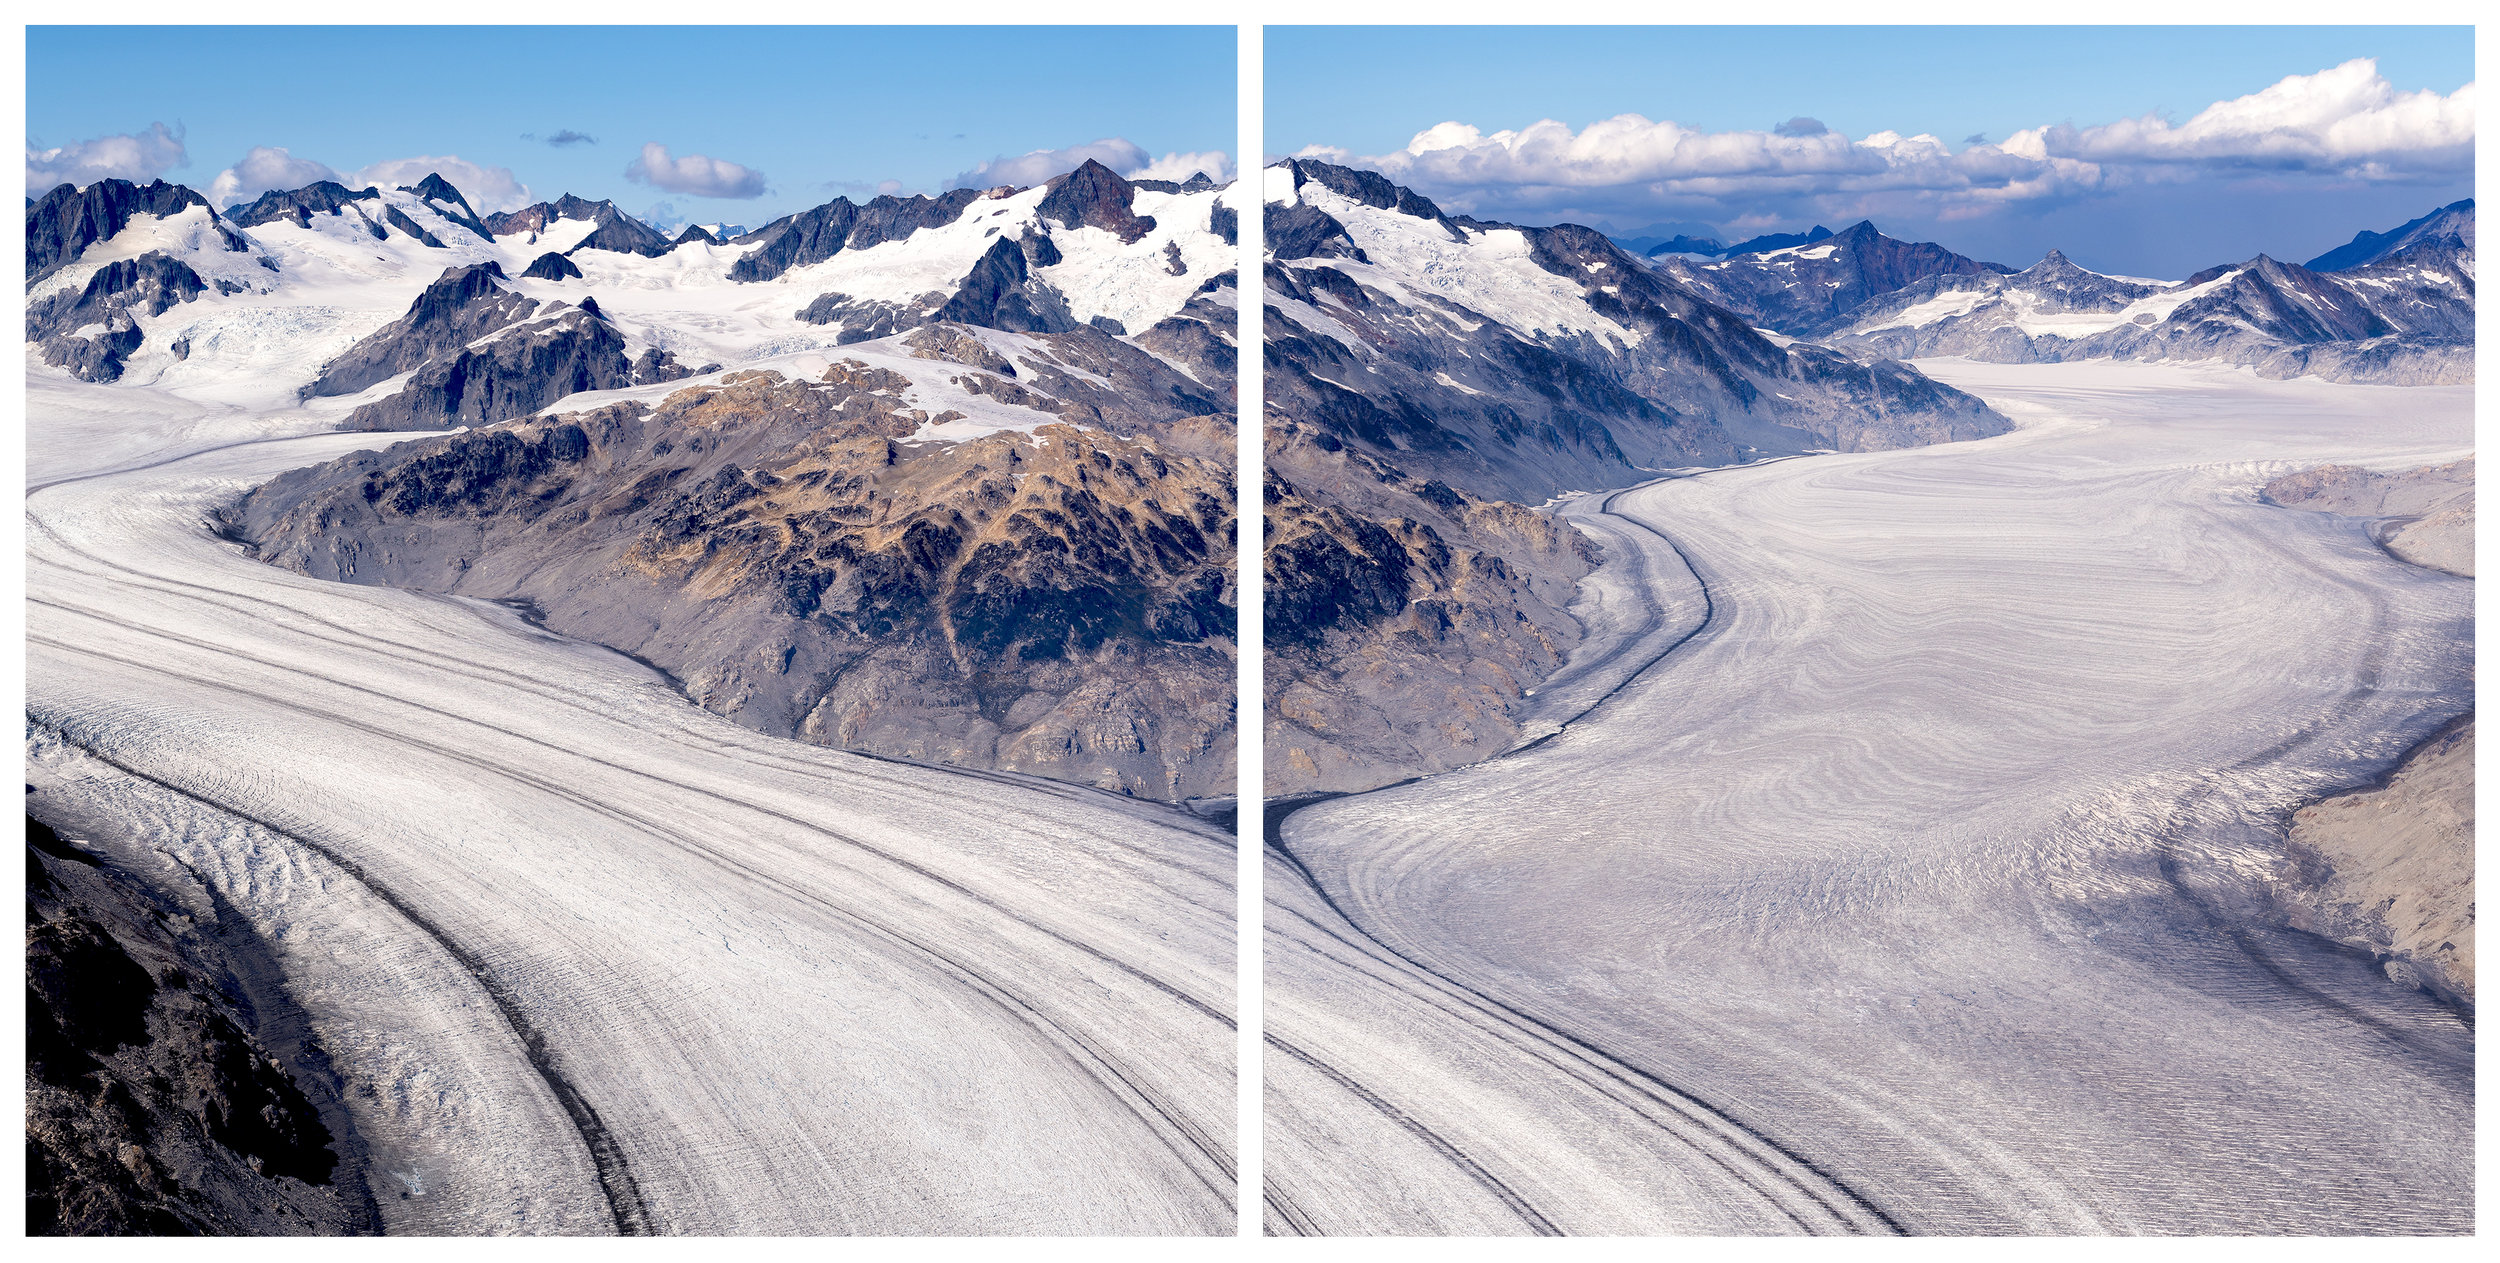 The Great Divide | Fang Peak - Diptych (2019)